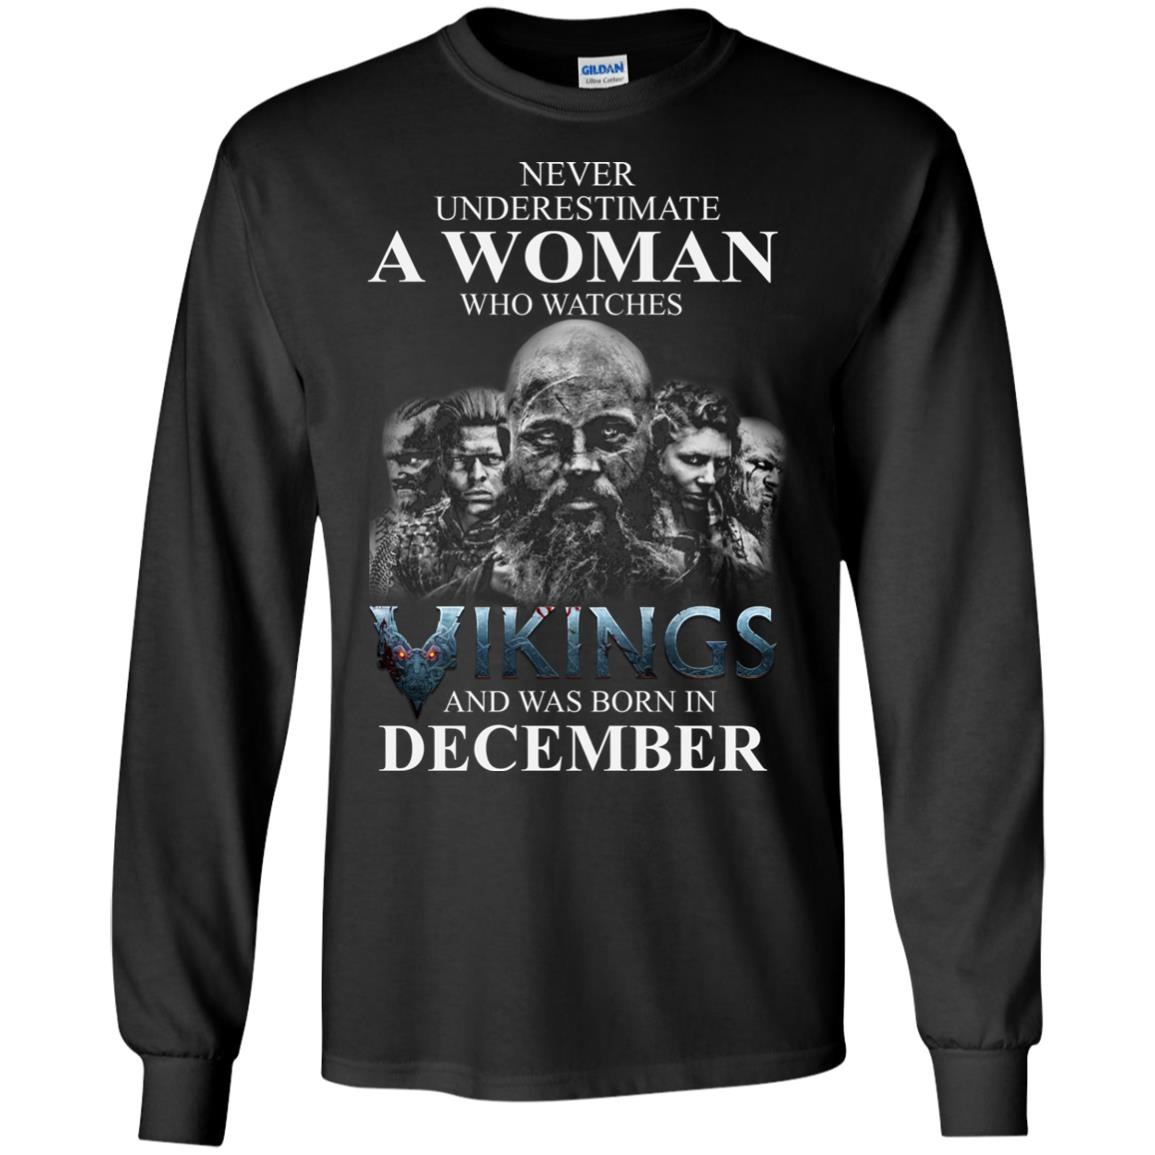 image 1221 - Never Underestimate A woman who watches Vikings and was born in December shirt